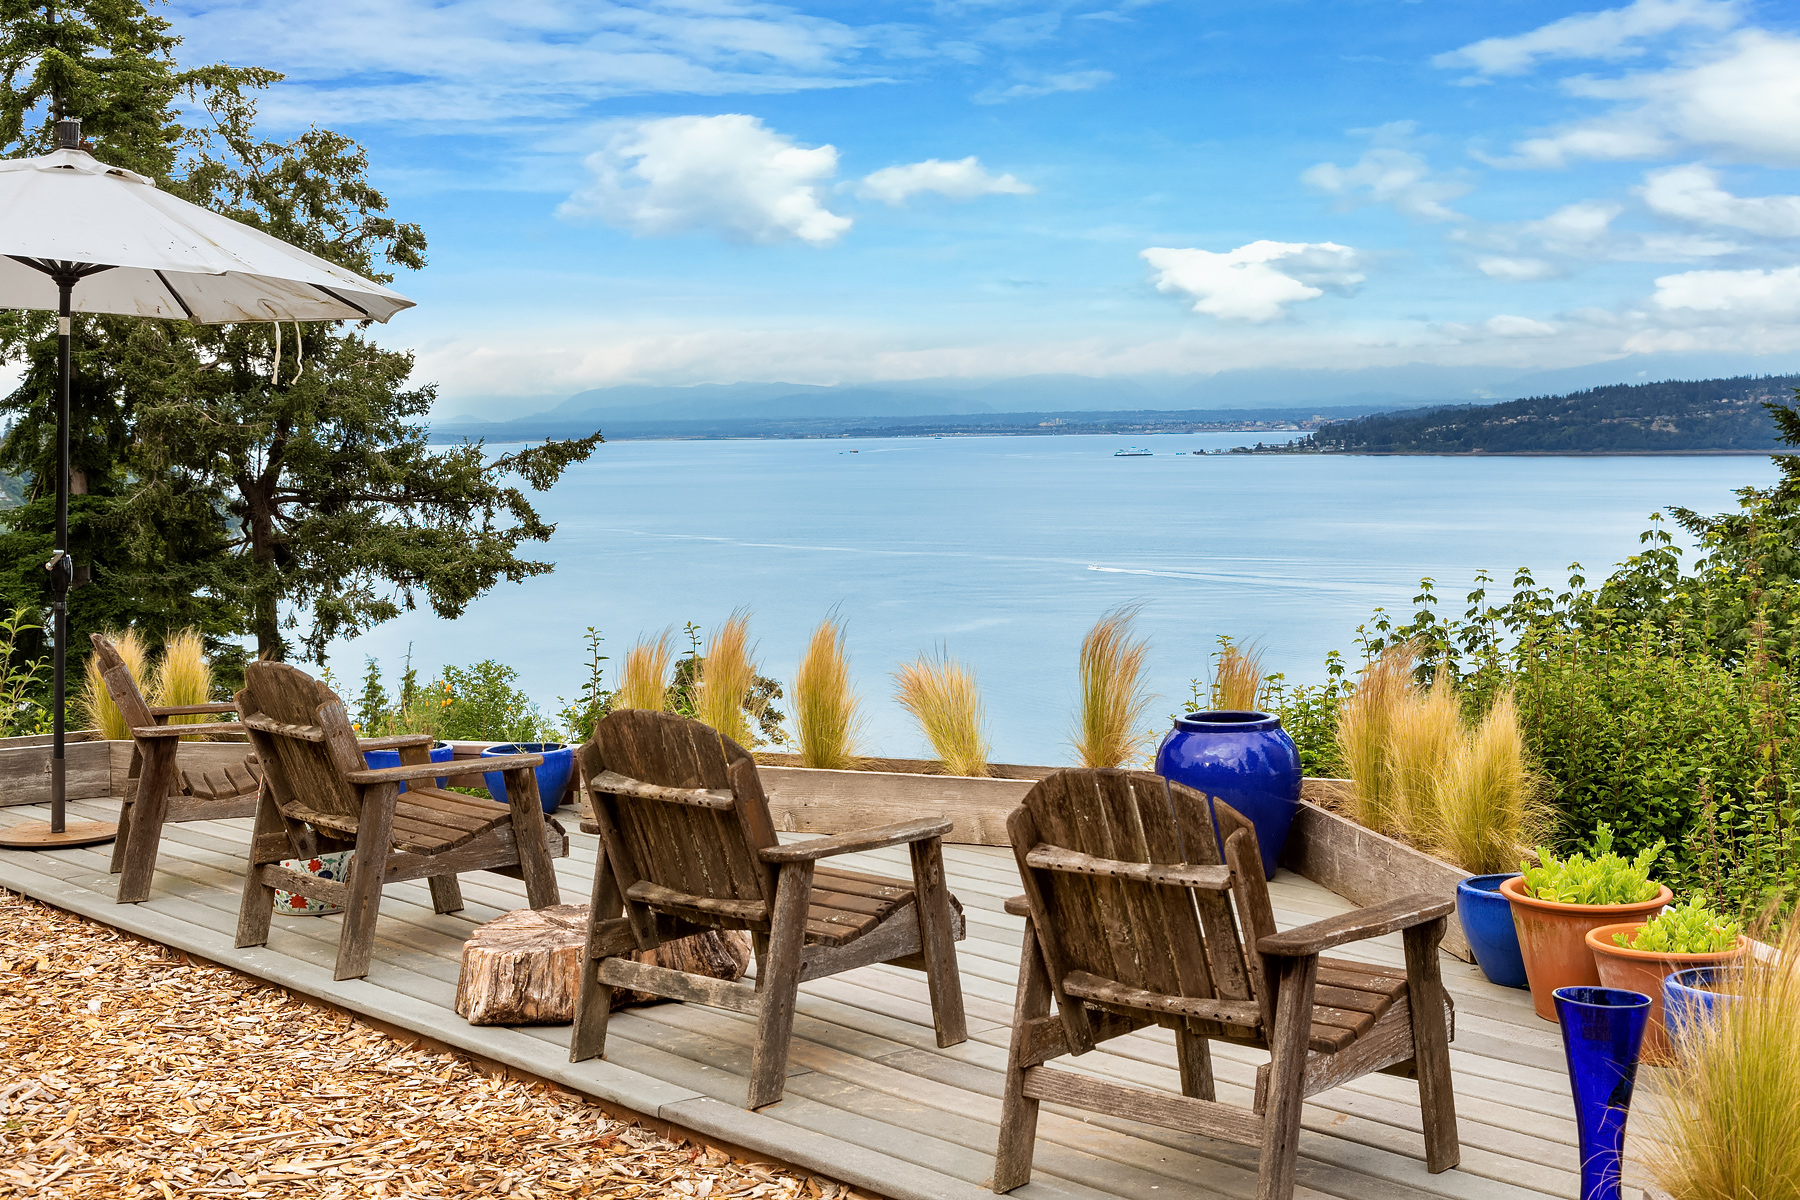 By the Numbers - The average and median waterfront selling prices among the three towns at South Whidbey Island were respectively $1.06 million and $872,500.